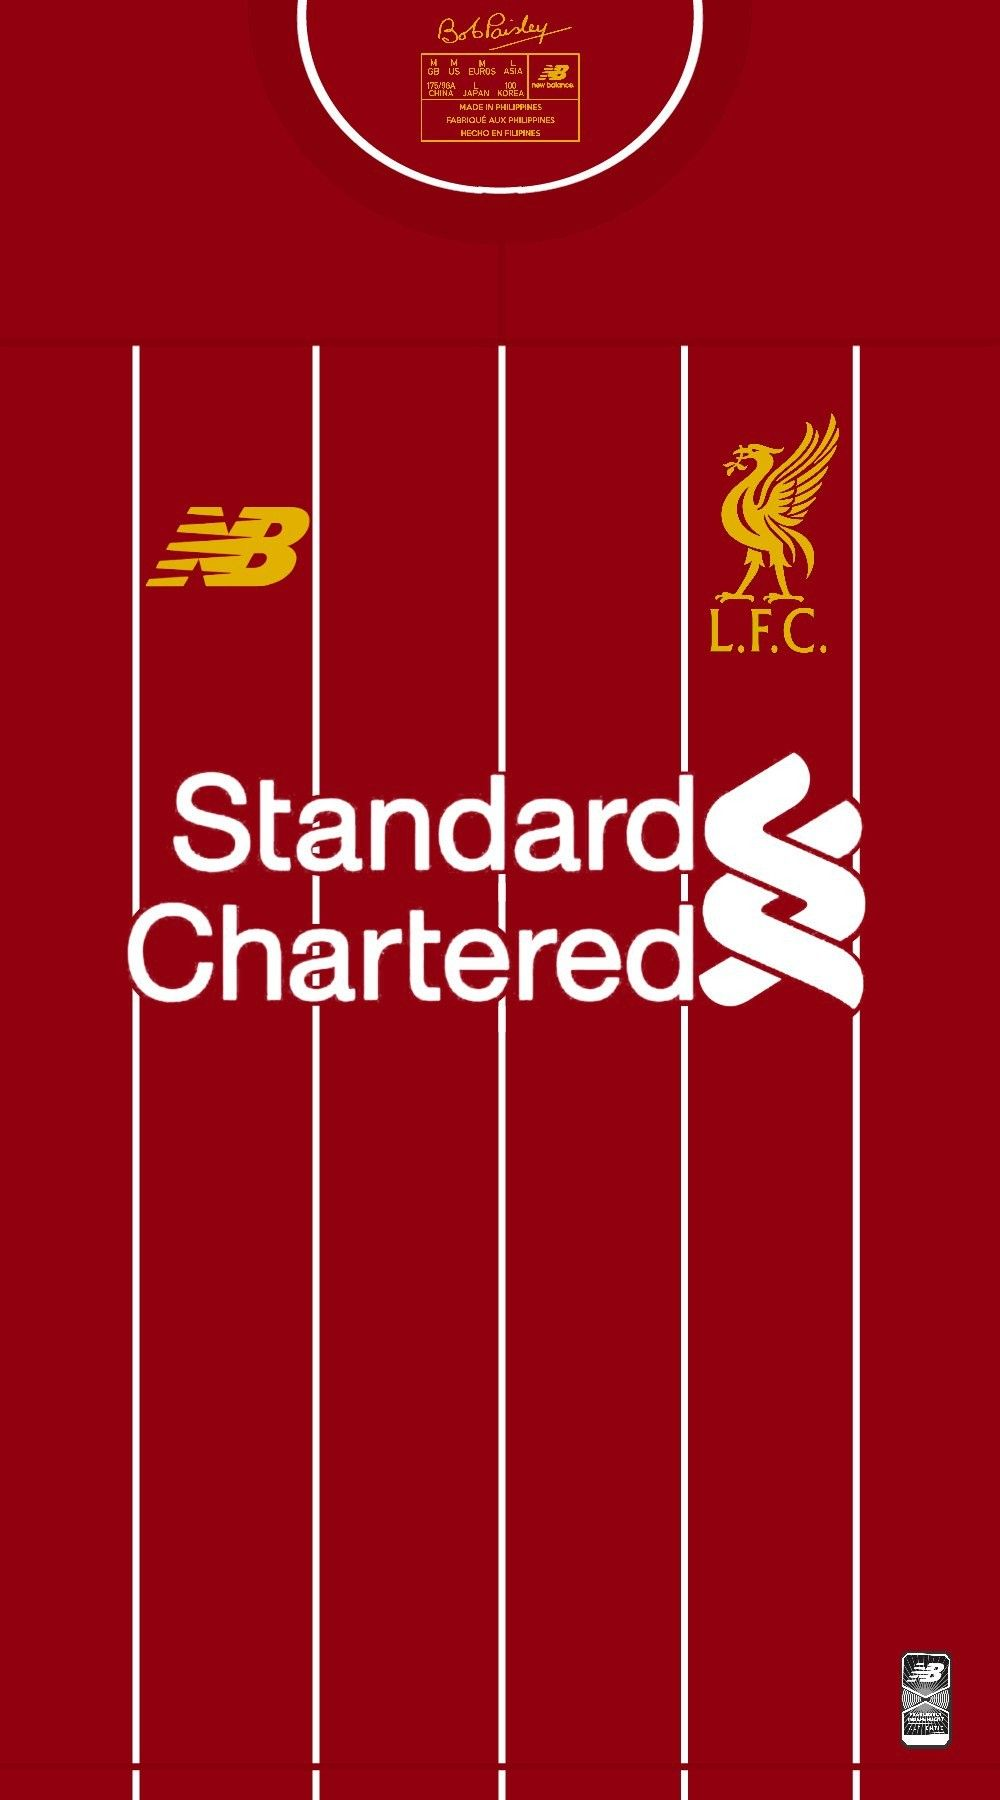 Liverpool Home 2019 2020 Liverpool Anfield Liverpool